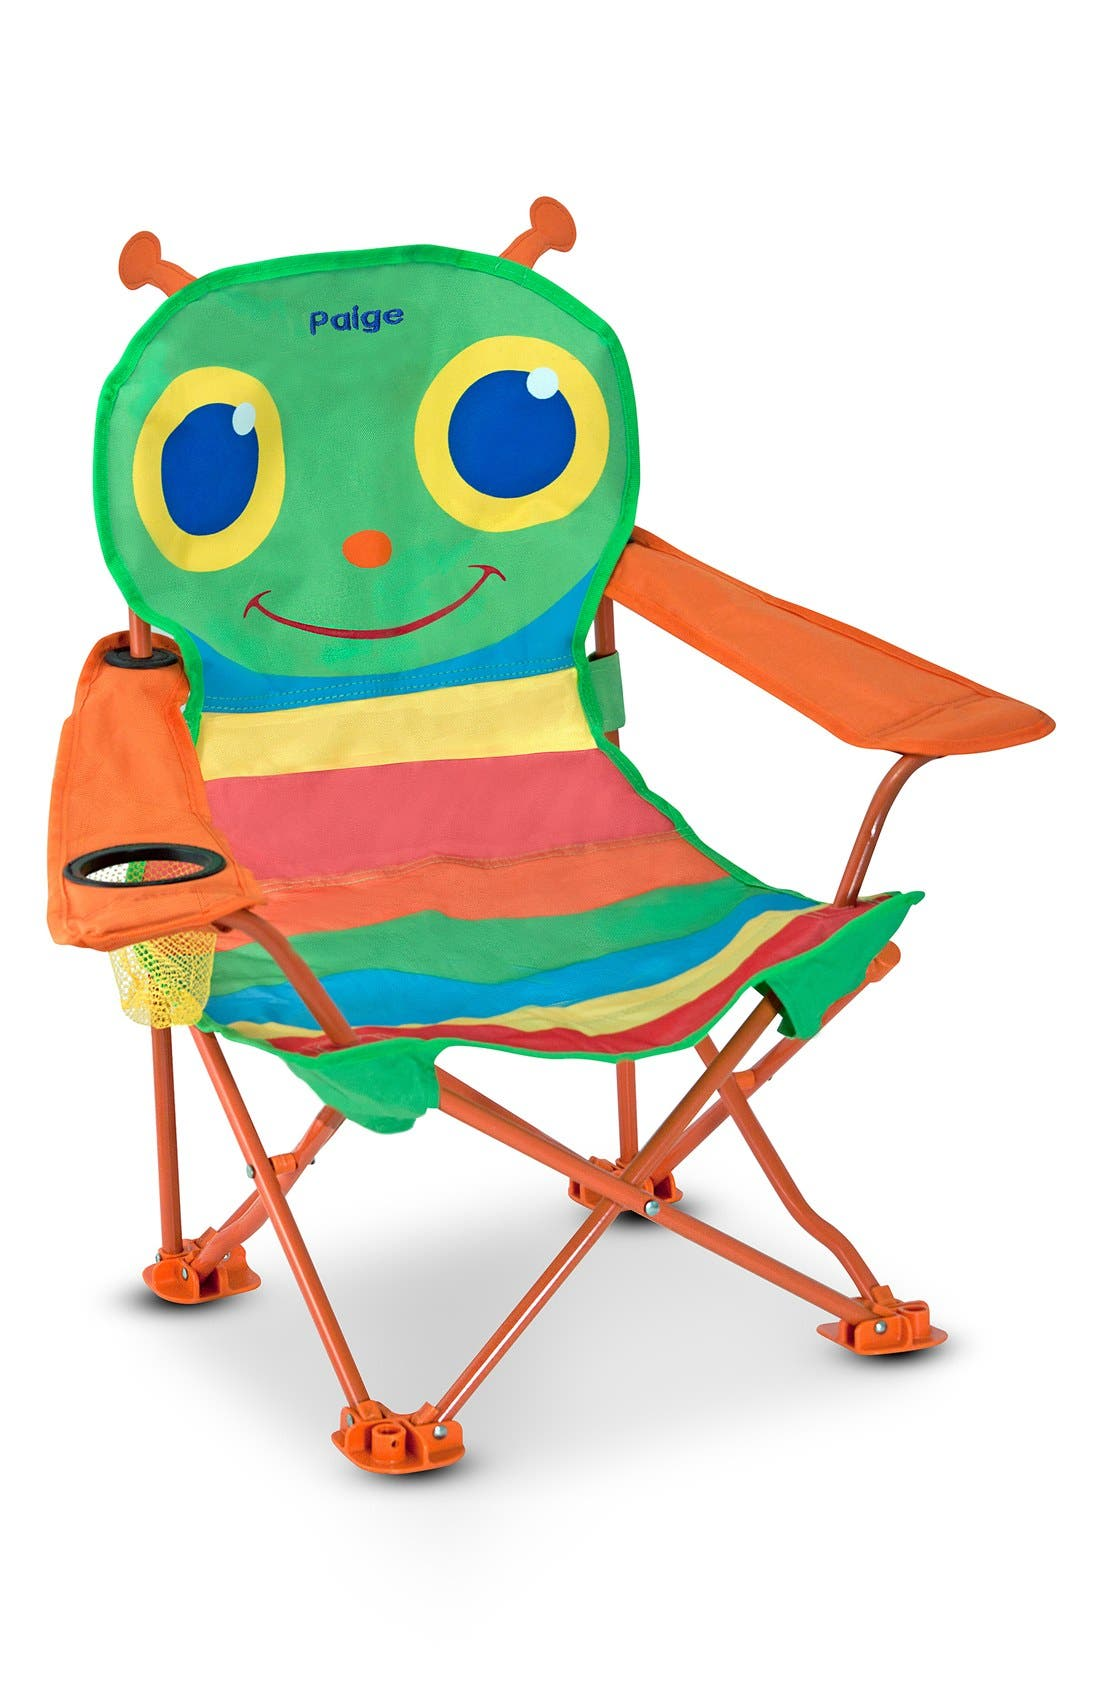 Melissa & Doug 'Happy Giddy' Personalized Folding Chair